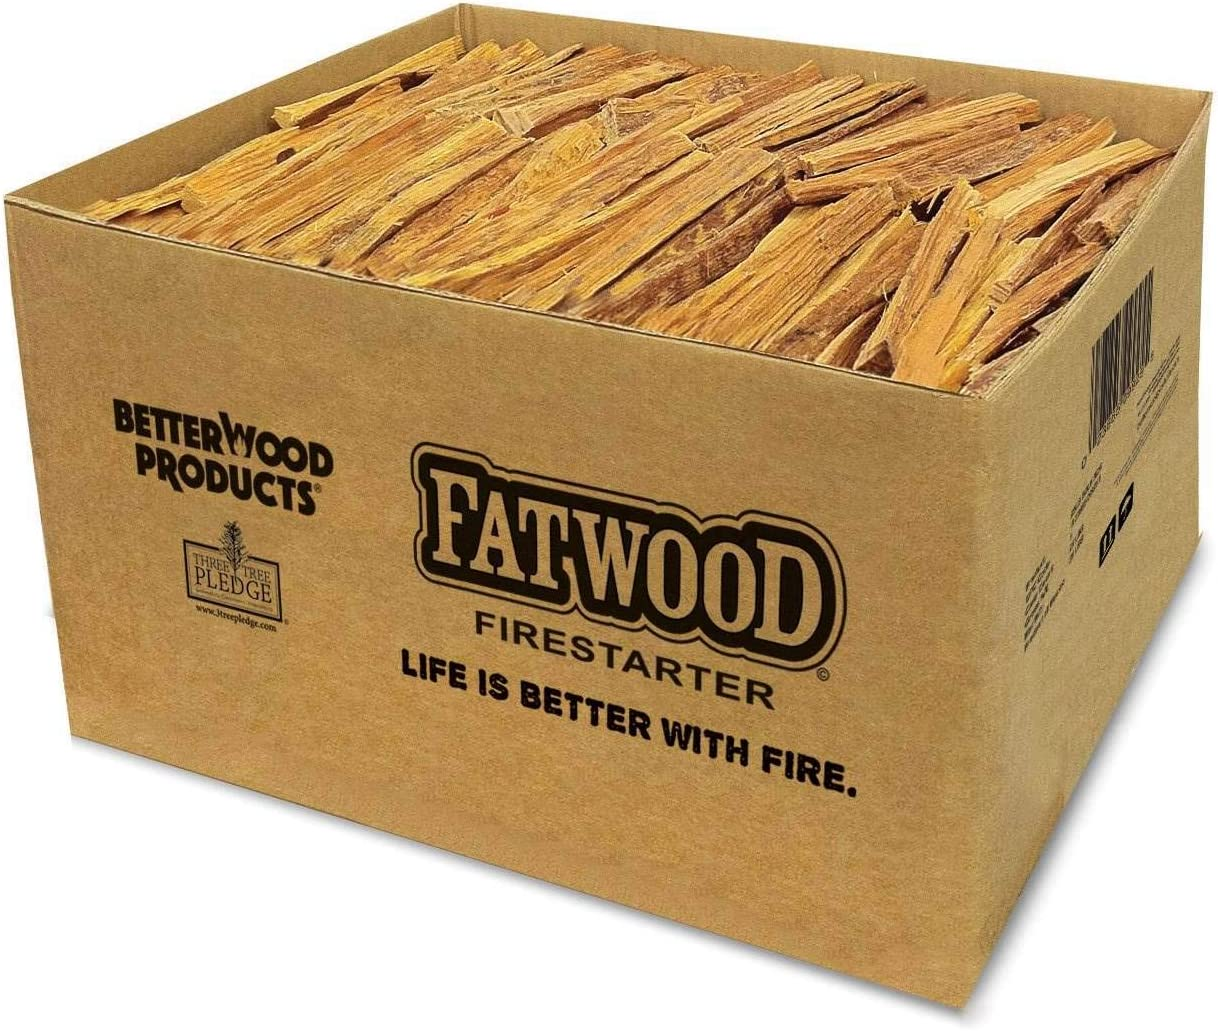 Better Wood Products Fatwood Firestarter Box, 25-Pounds 71NxLl6YYQL